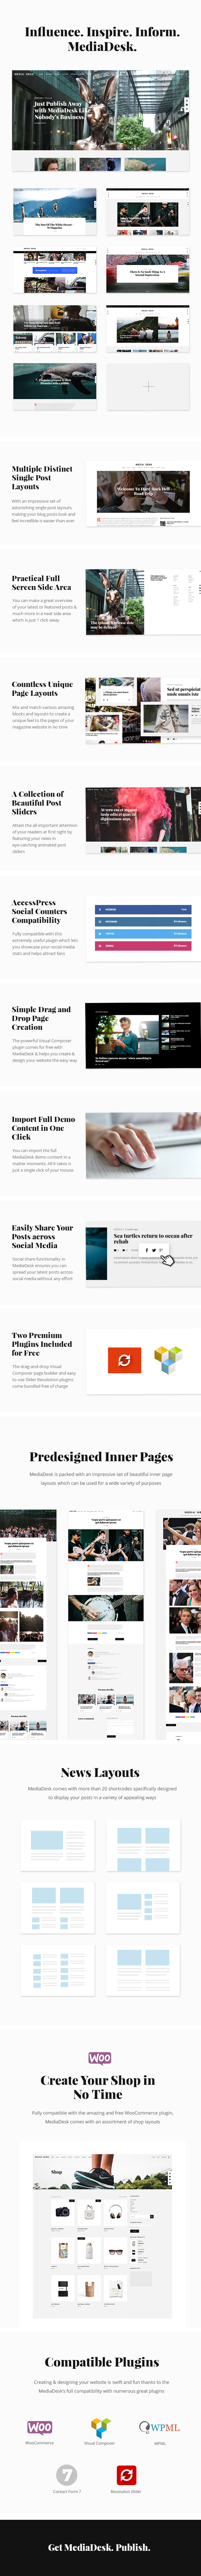 WordPress theme MediaDesk - A Contemporary News and Magazine Theme (News / Editorial)